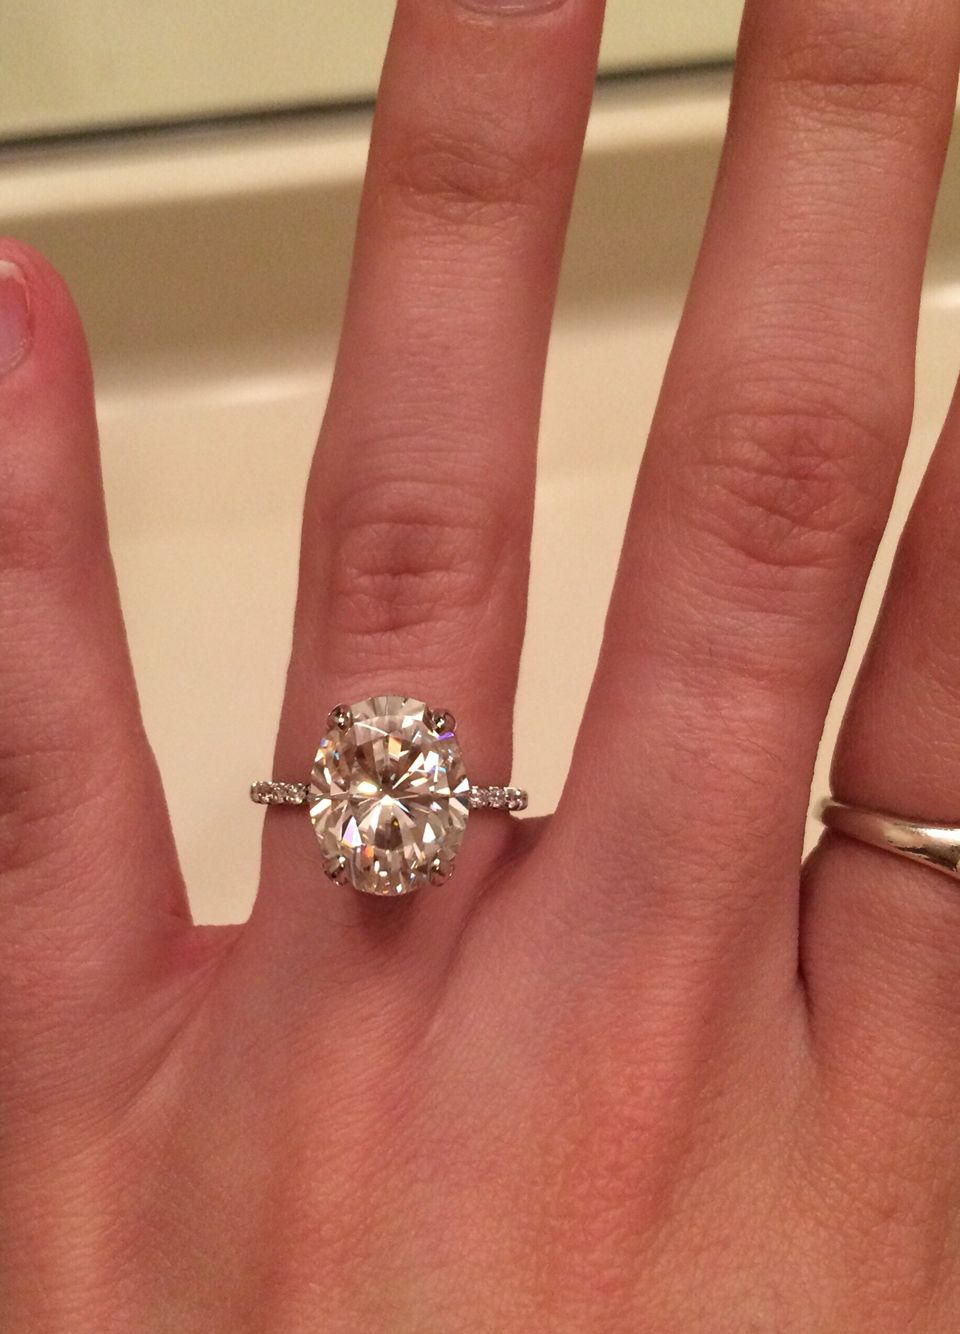 Find This Pin And More On Ring: Oval Engagement Rings 11x9 Oval Moissanite